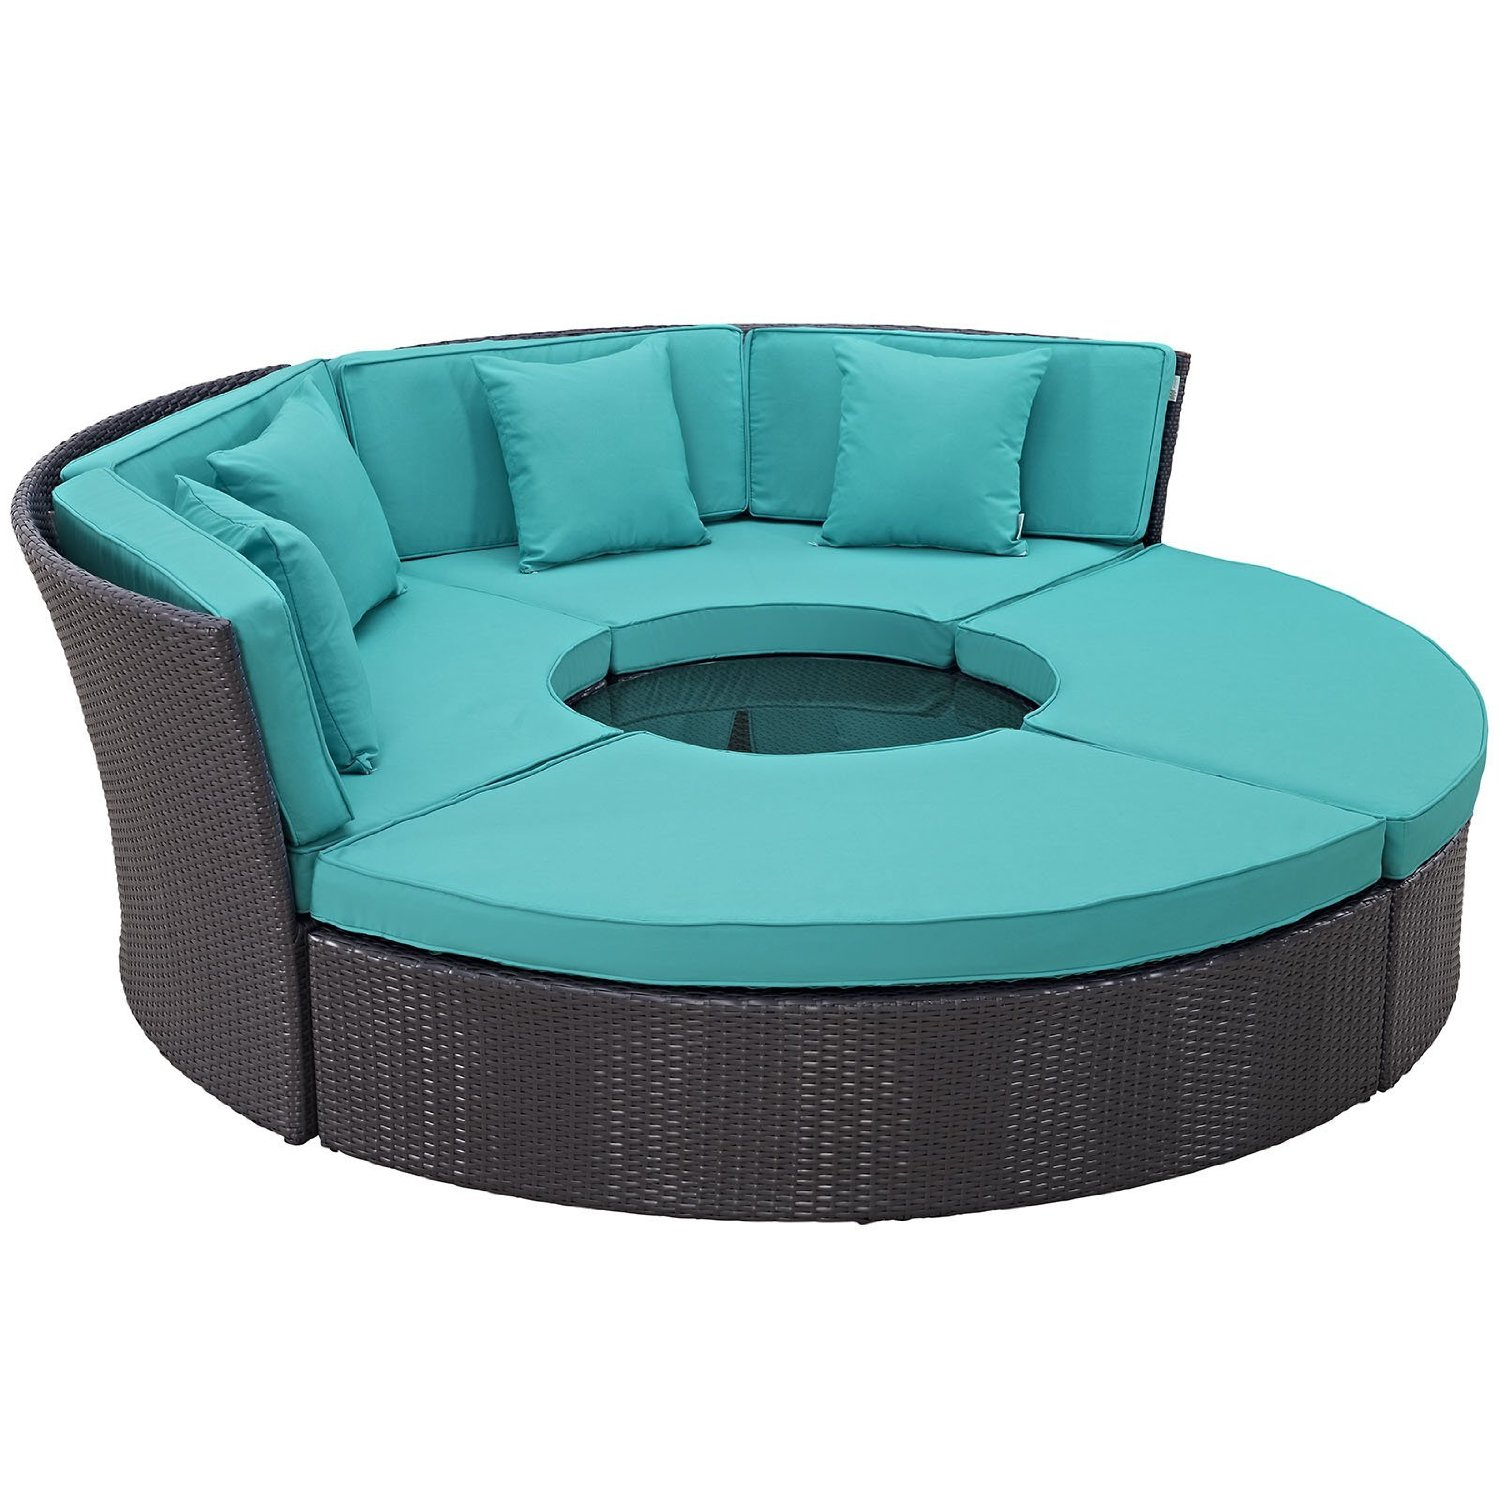 Modway Convene Wicker Rattan Outdoor Patio Sectional Daybed in Espresso Turquoise